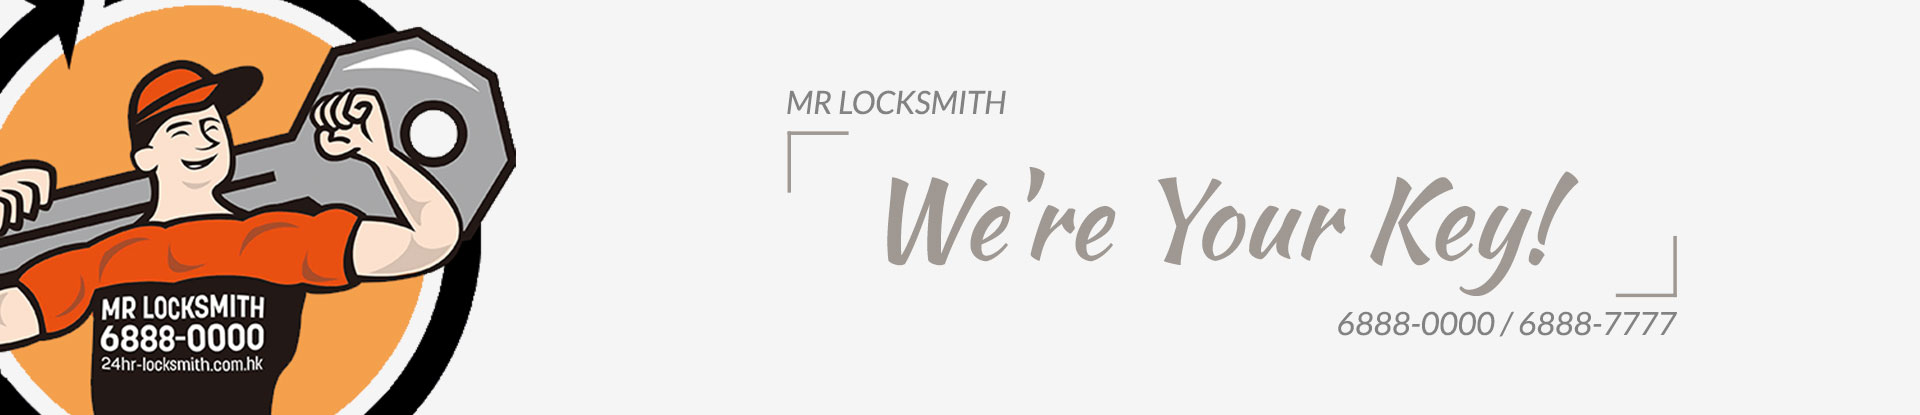 Aberdeen Locksmith -Locksmith in Aberdeen